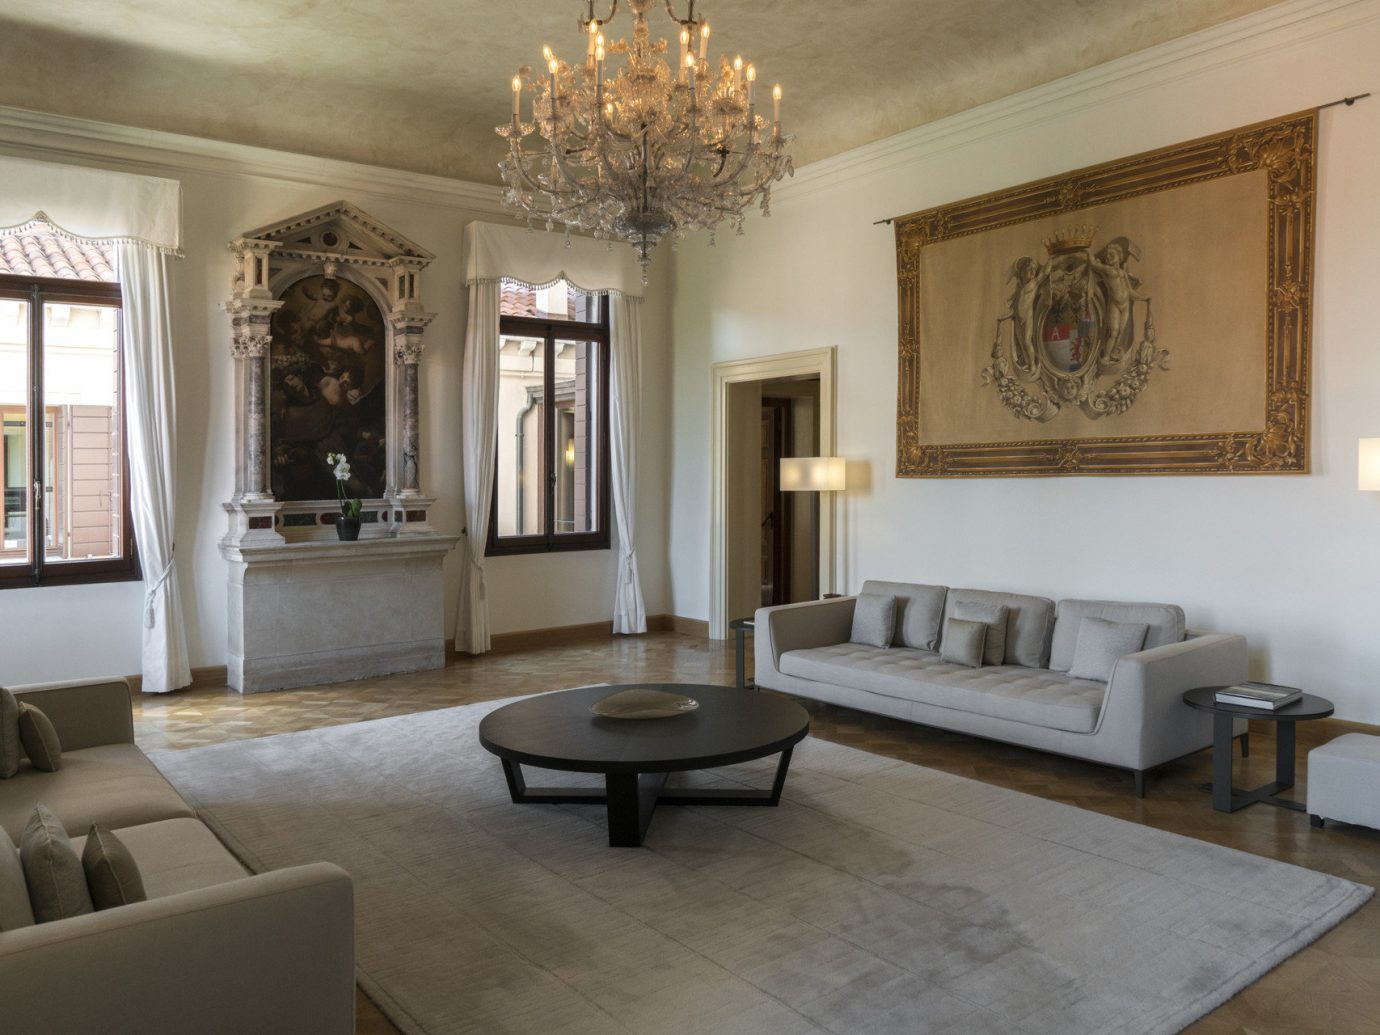 Hotels Italy Luxury Travel Venice indoor Living floor wall room sofa ceiling property living room dining room furniture estate home interior design mansion Design real estate Villa tourist attraction decorated area